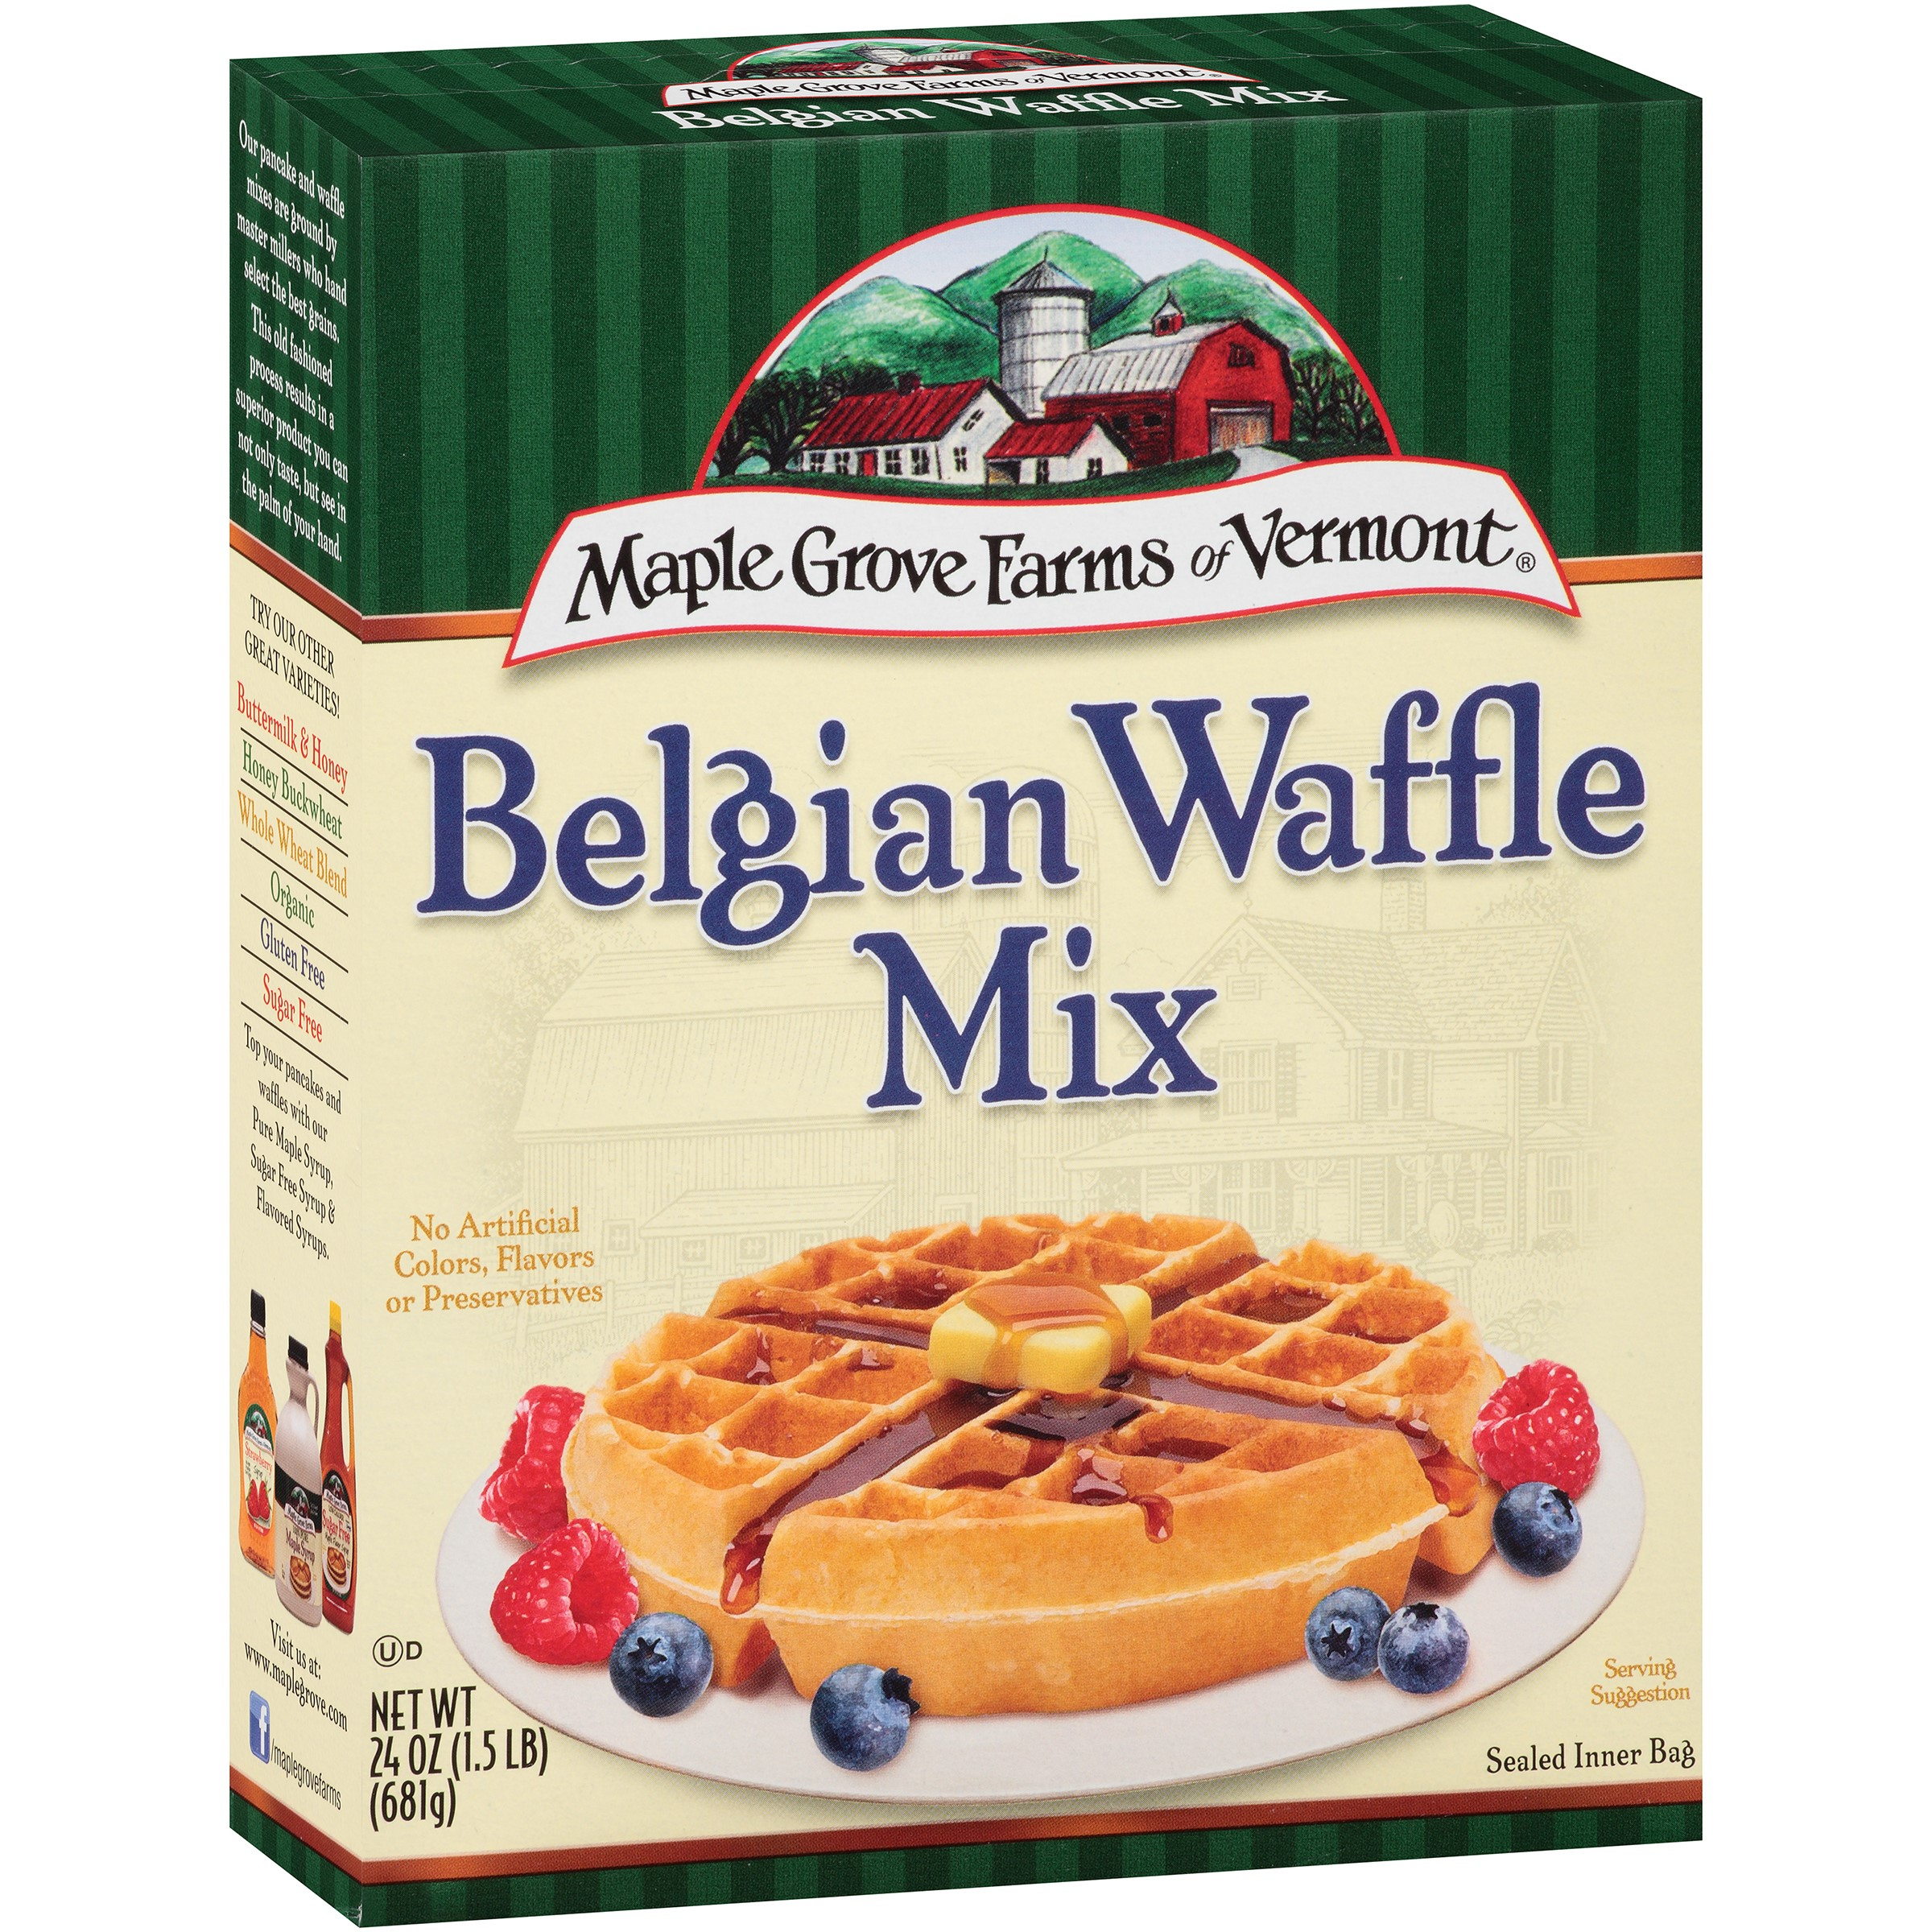 Maple Grove Farmers of Vermont All Natural Belgian Waffle Mix, 24.0 OZ by B&G